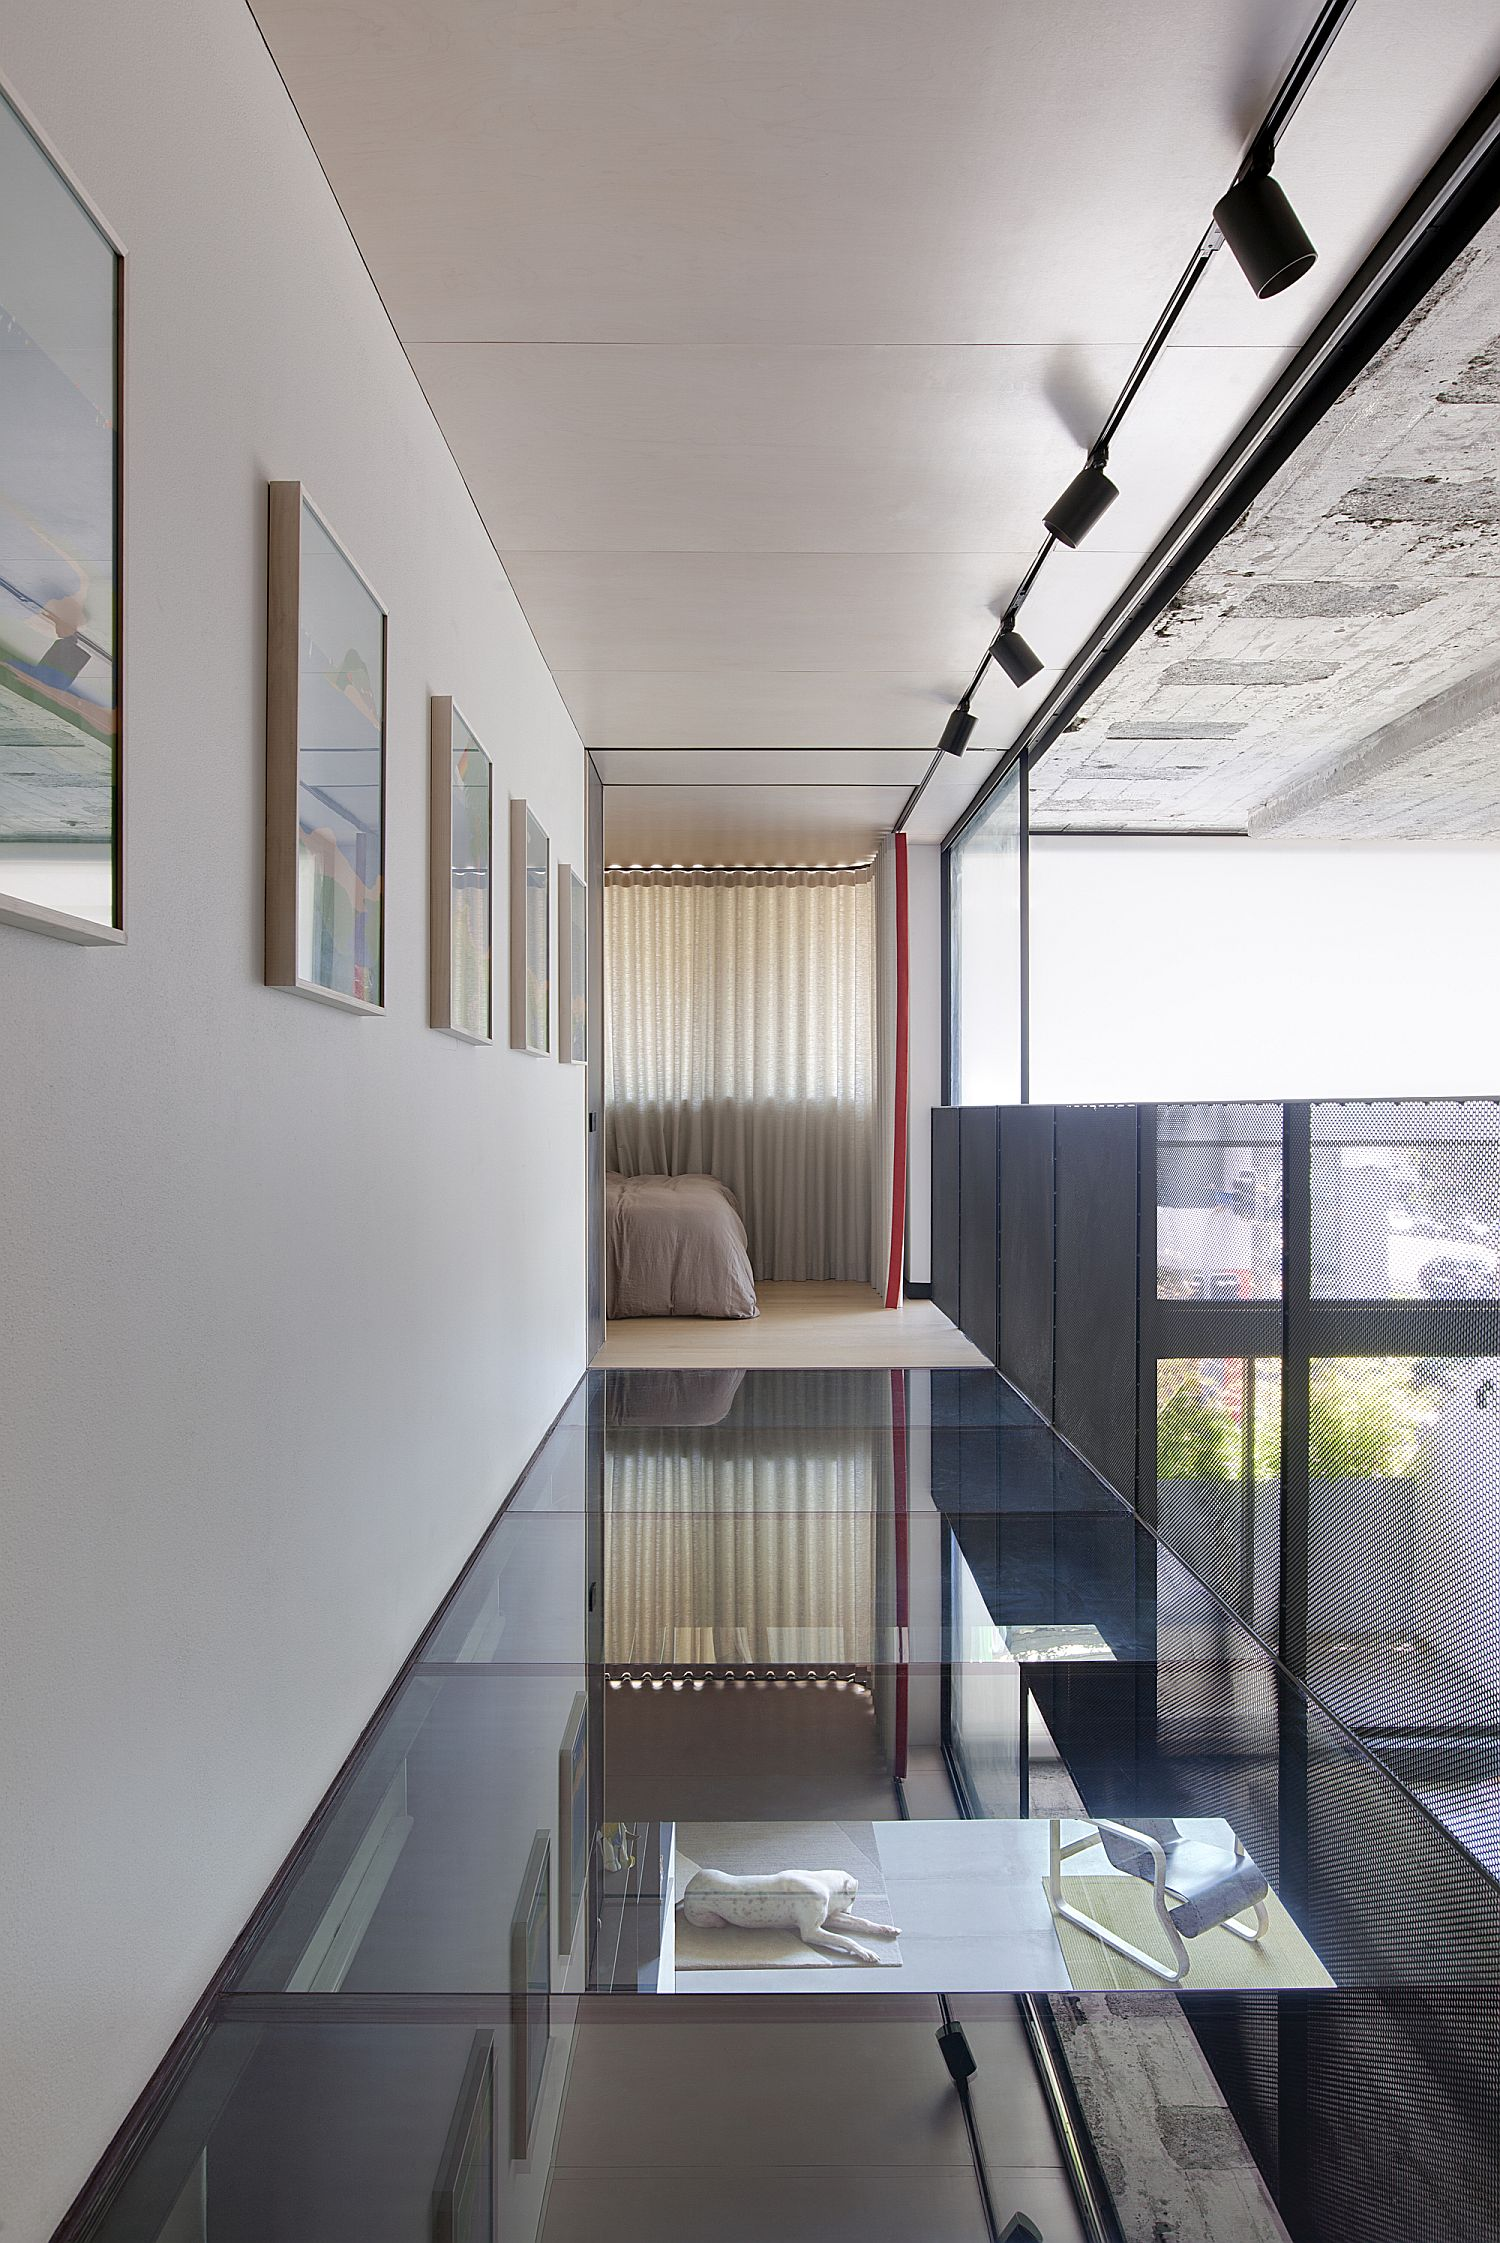 Glass walkway connects the two different upper levels of the house